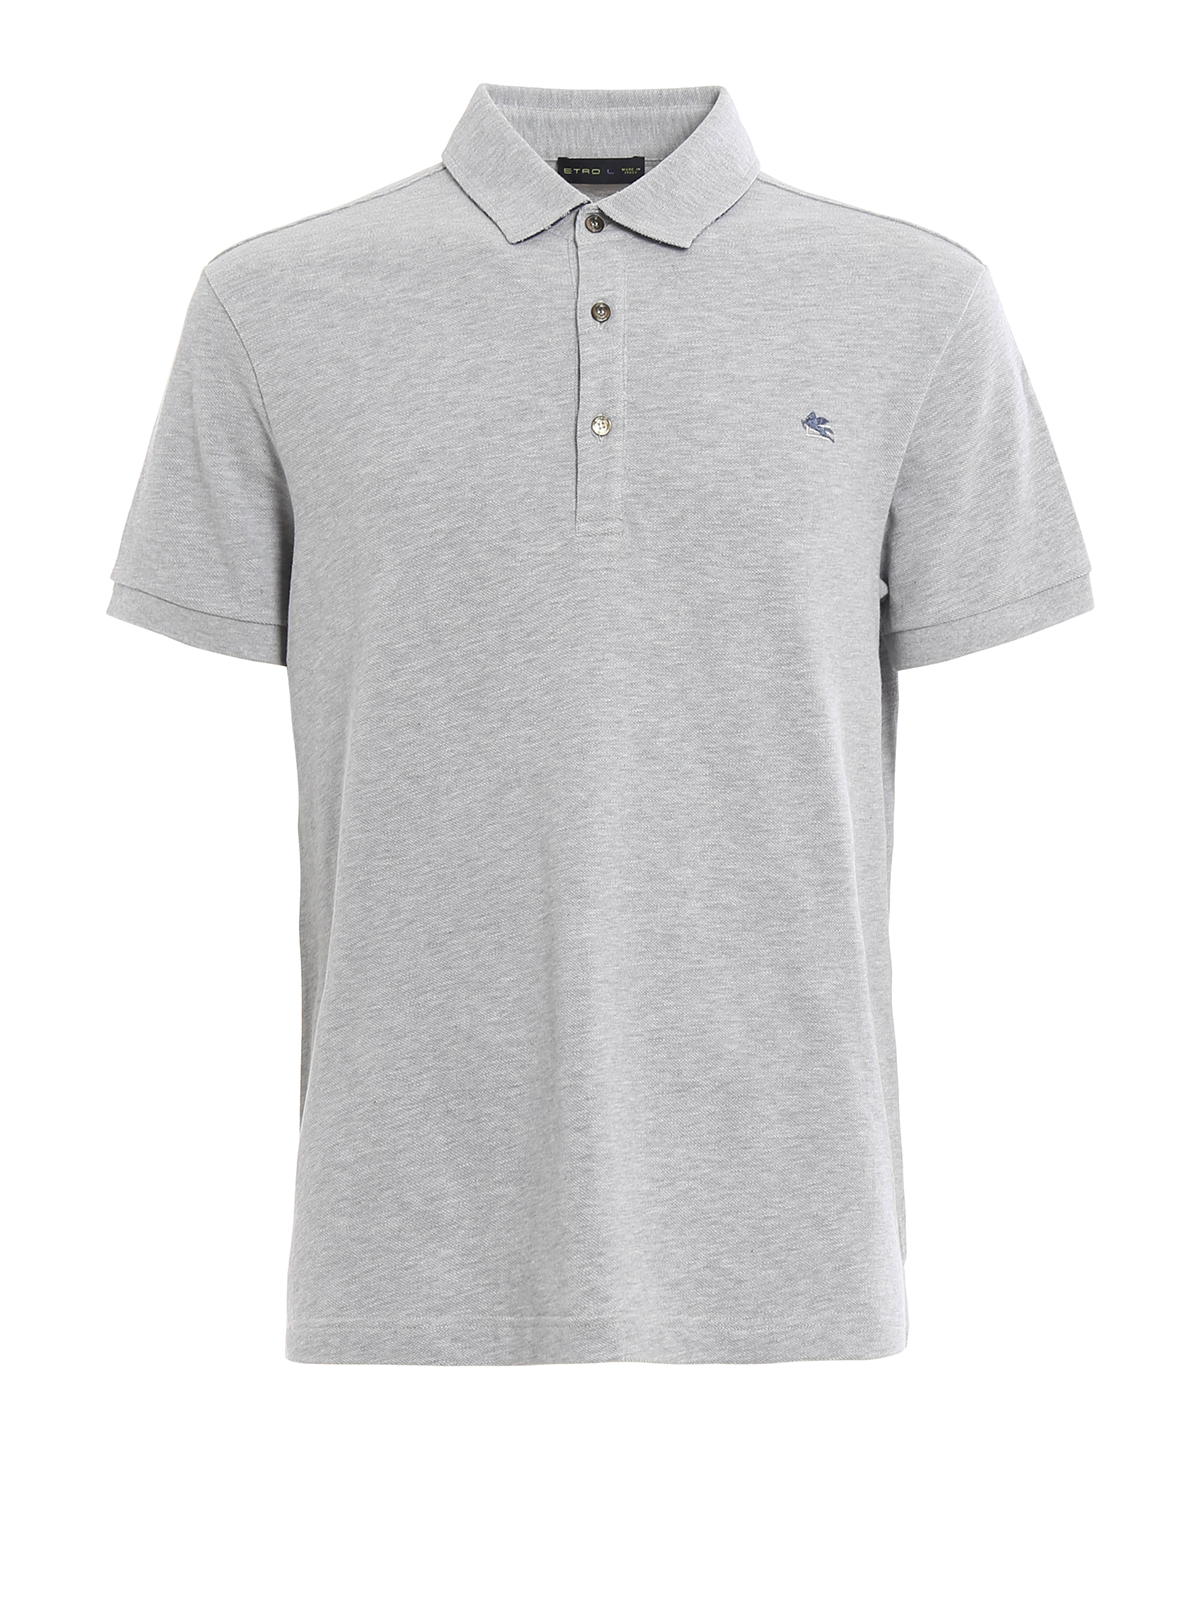 Embroidered Logo Polo Shirt By Etro Polo Shirts Shop